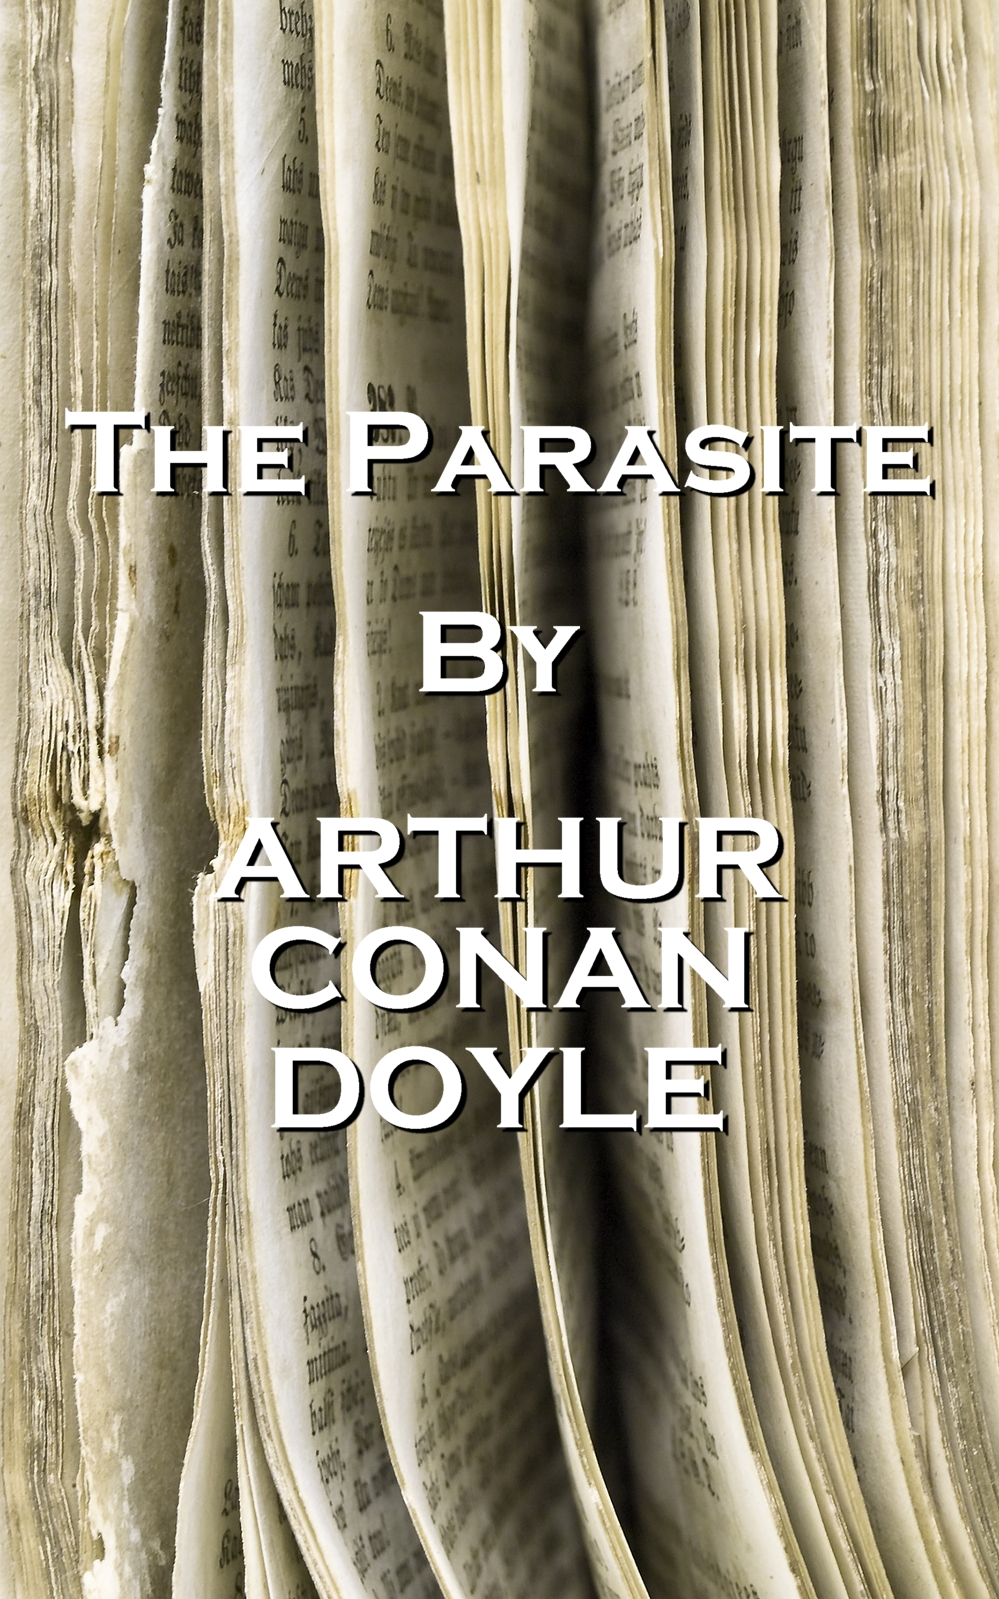 The Parasite, By Arthur Conan Doyle